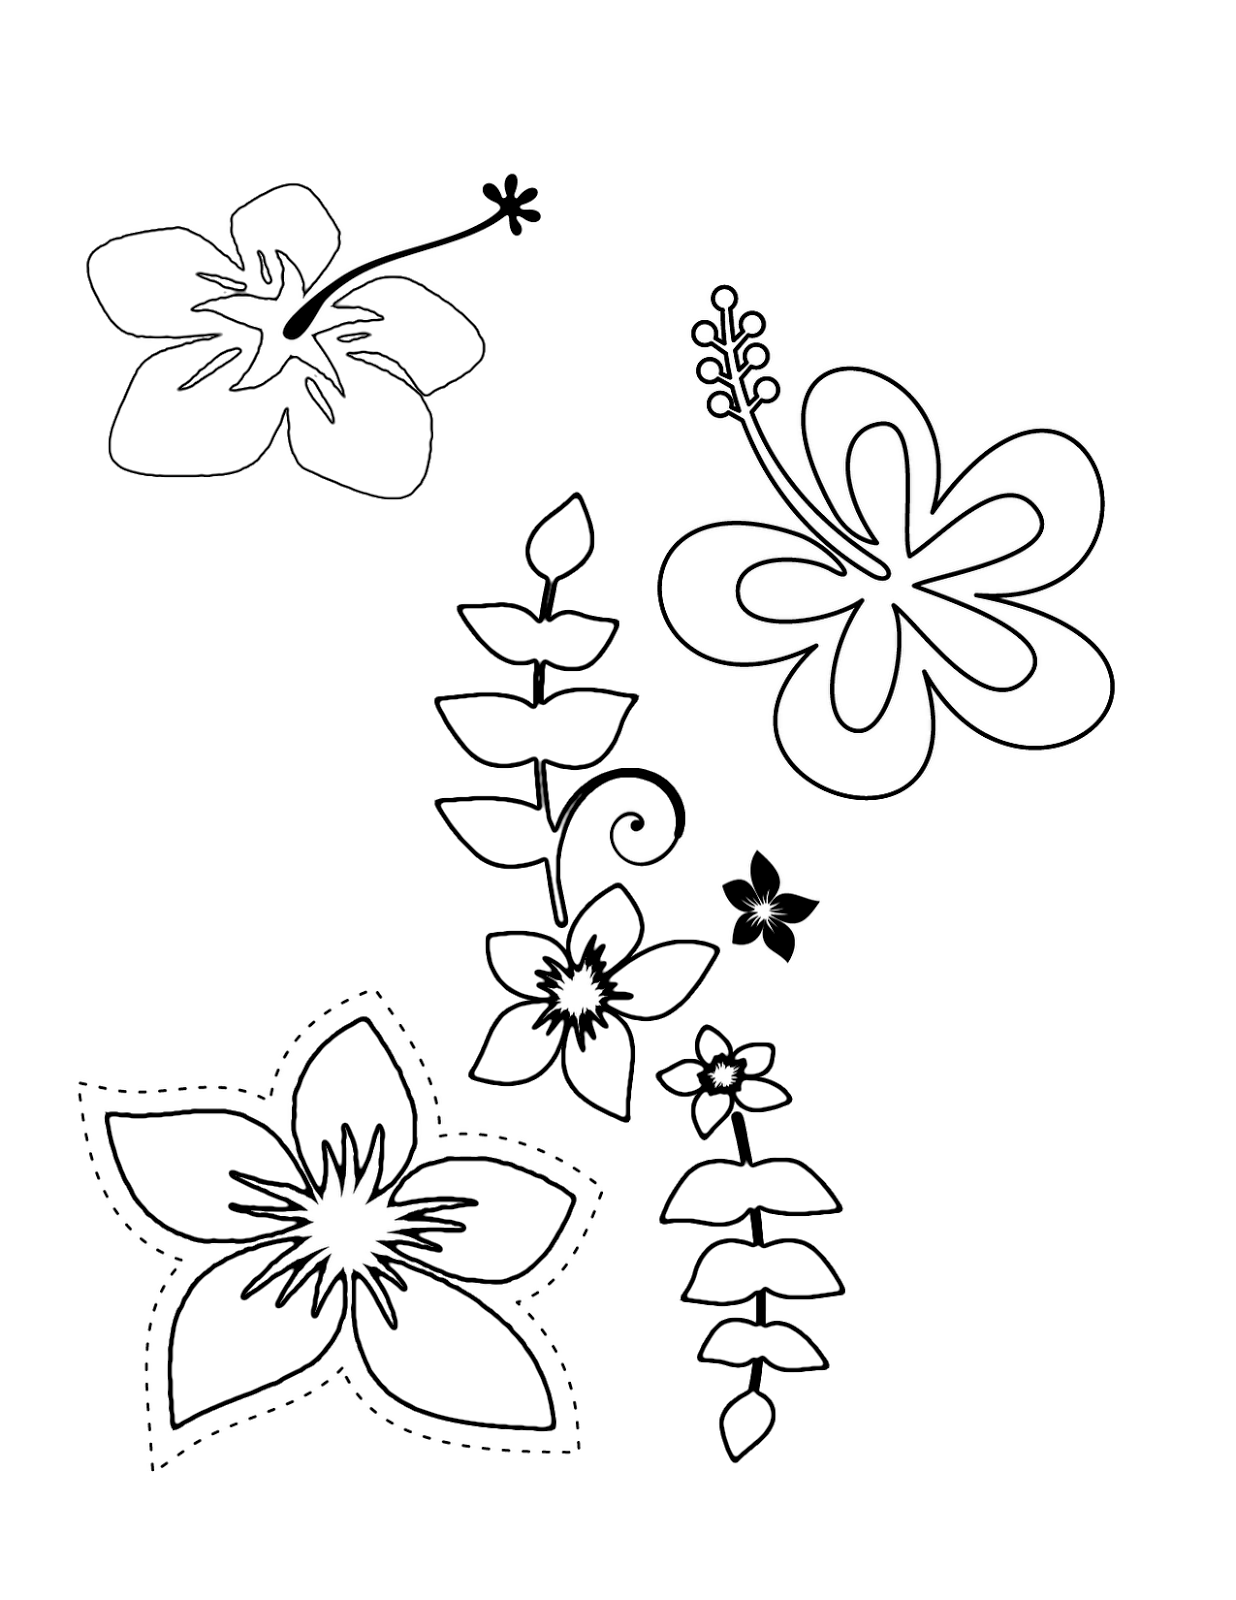 Tropical Flower Coloring Pages - Flower Coloring Page